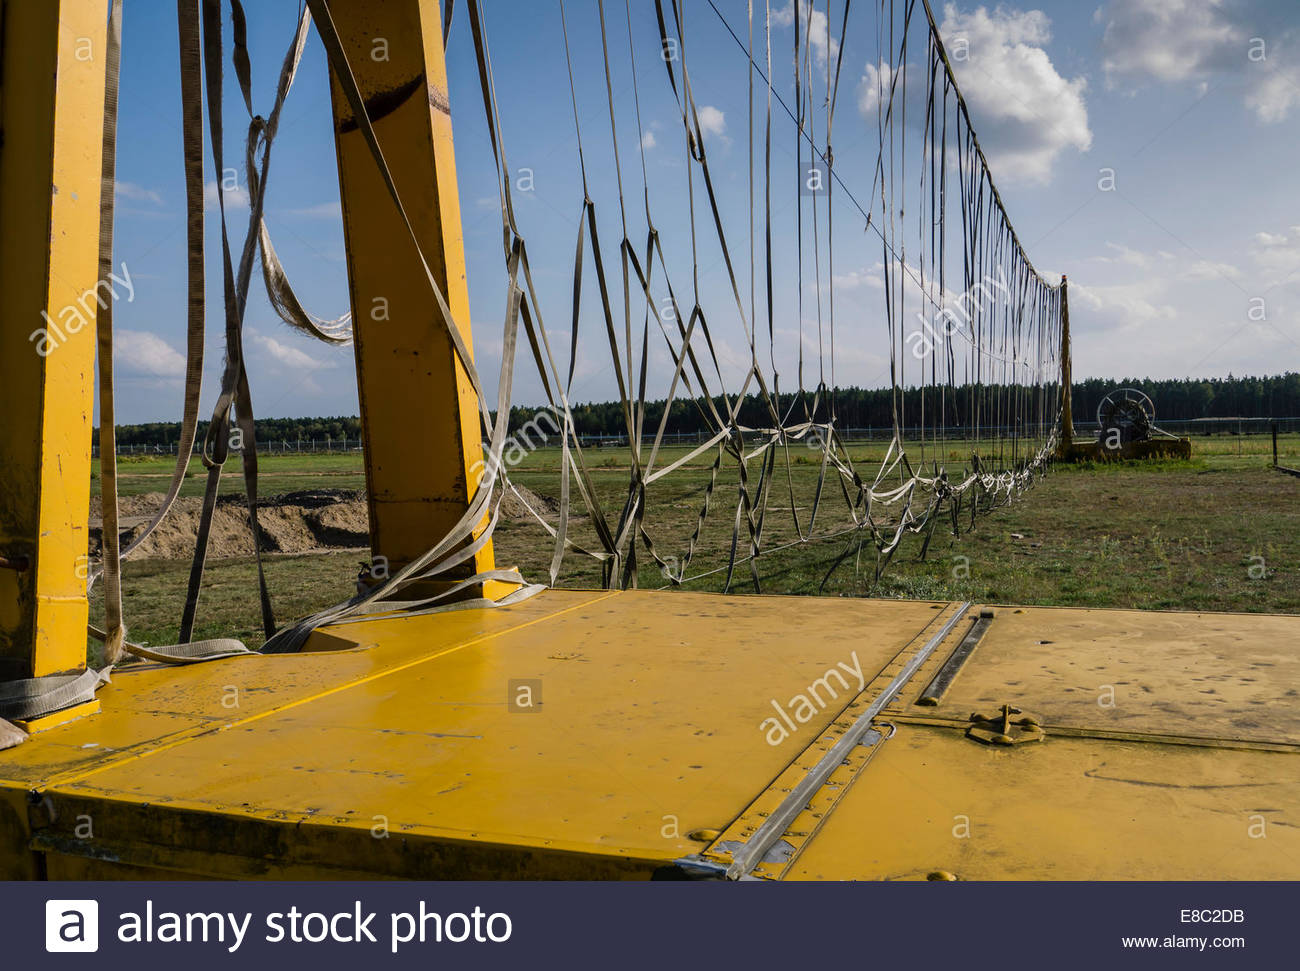 Finow, Germany East DDR, Museum Russian Cold War Base Aircraft Arrester Barrier remains - Stock Image